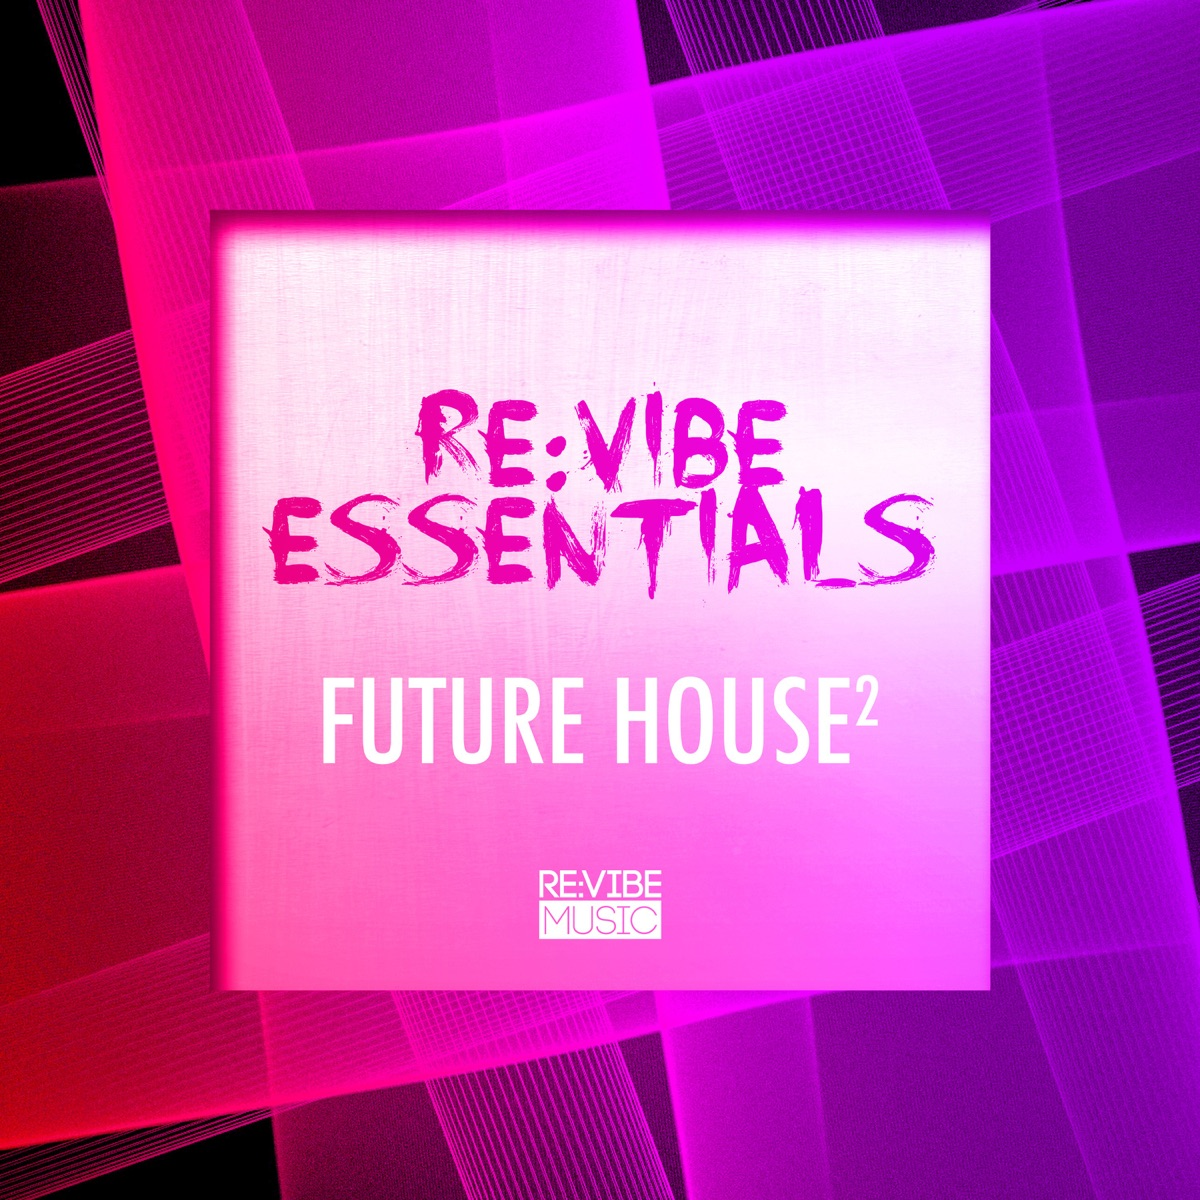 ReVibe Essentials - Future House Vol 2 Various Artists CD cover